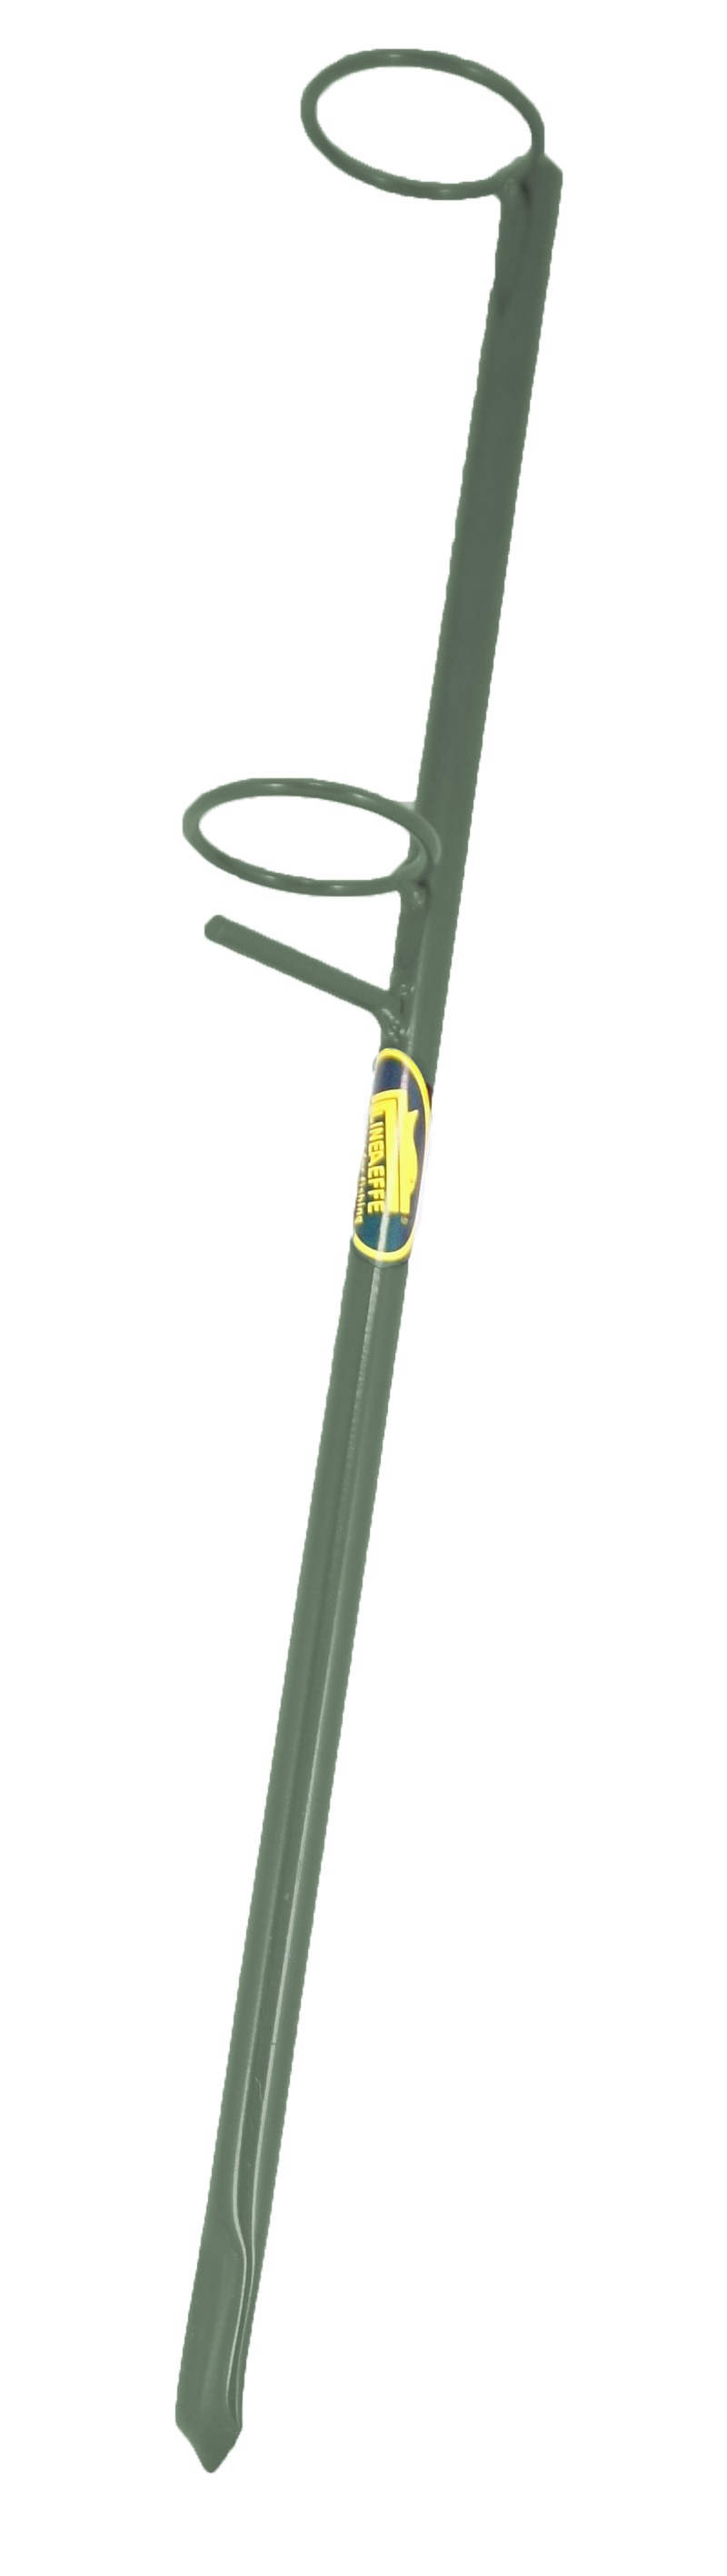 Lineaeffe beach rod holder glasgow angling centre for Beach fishing rod holder